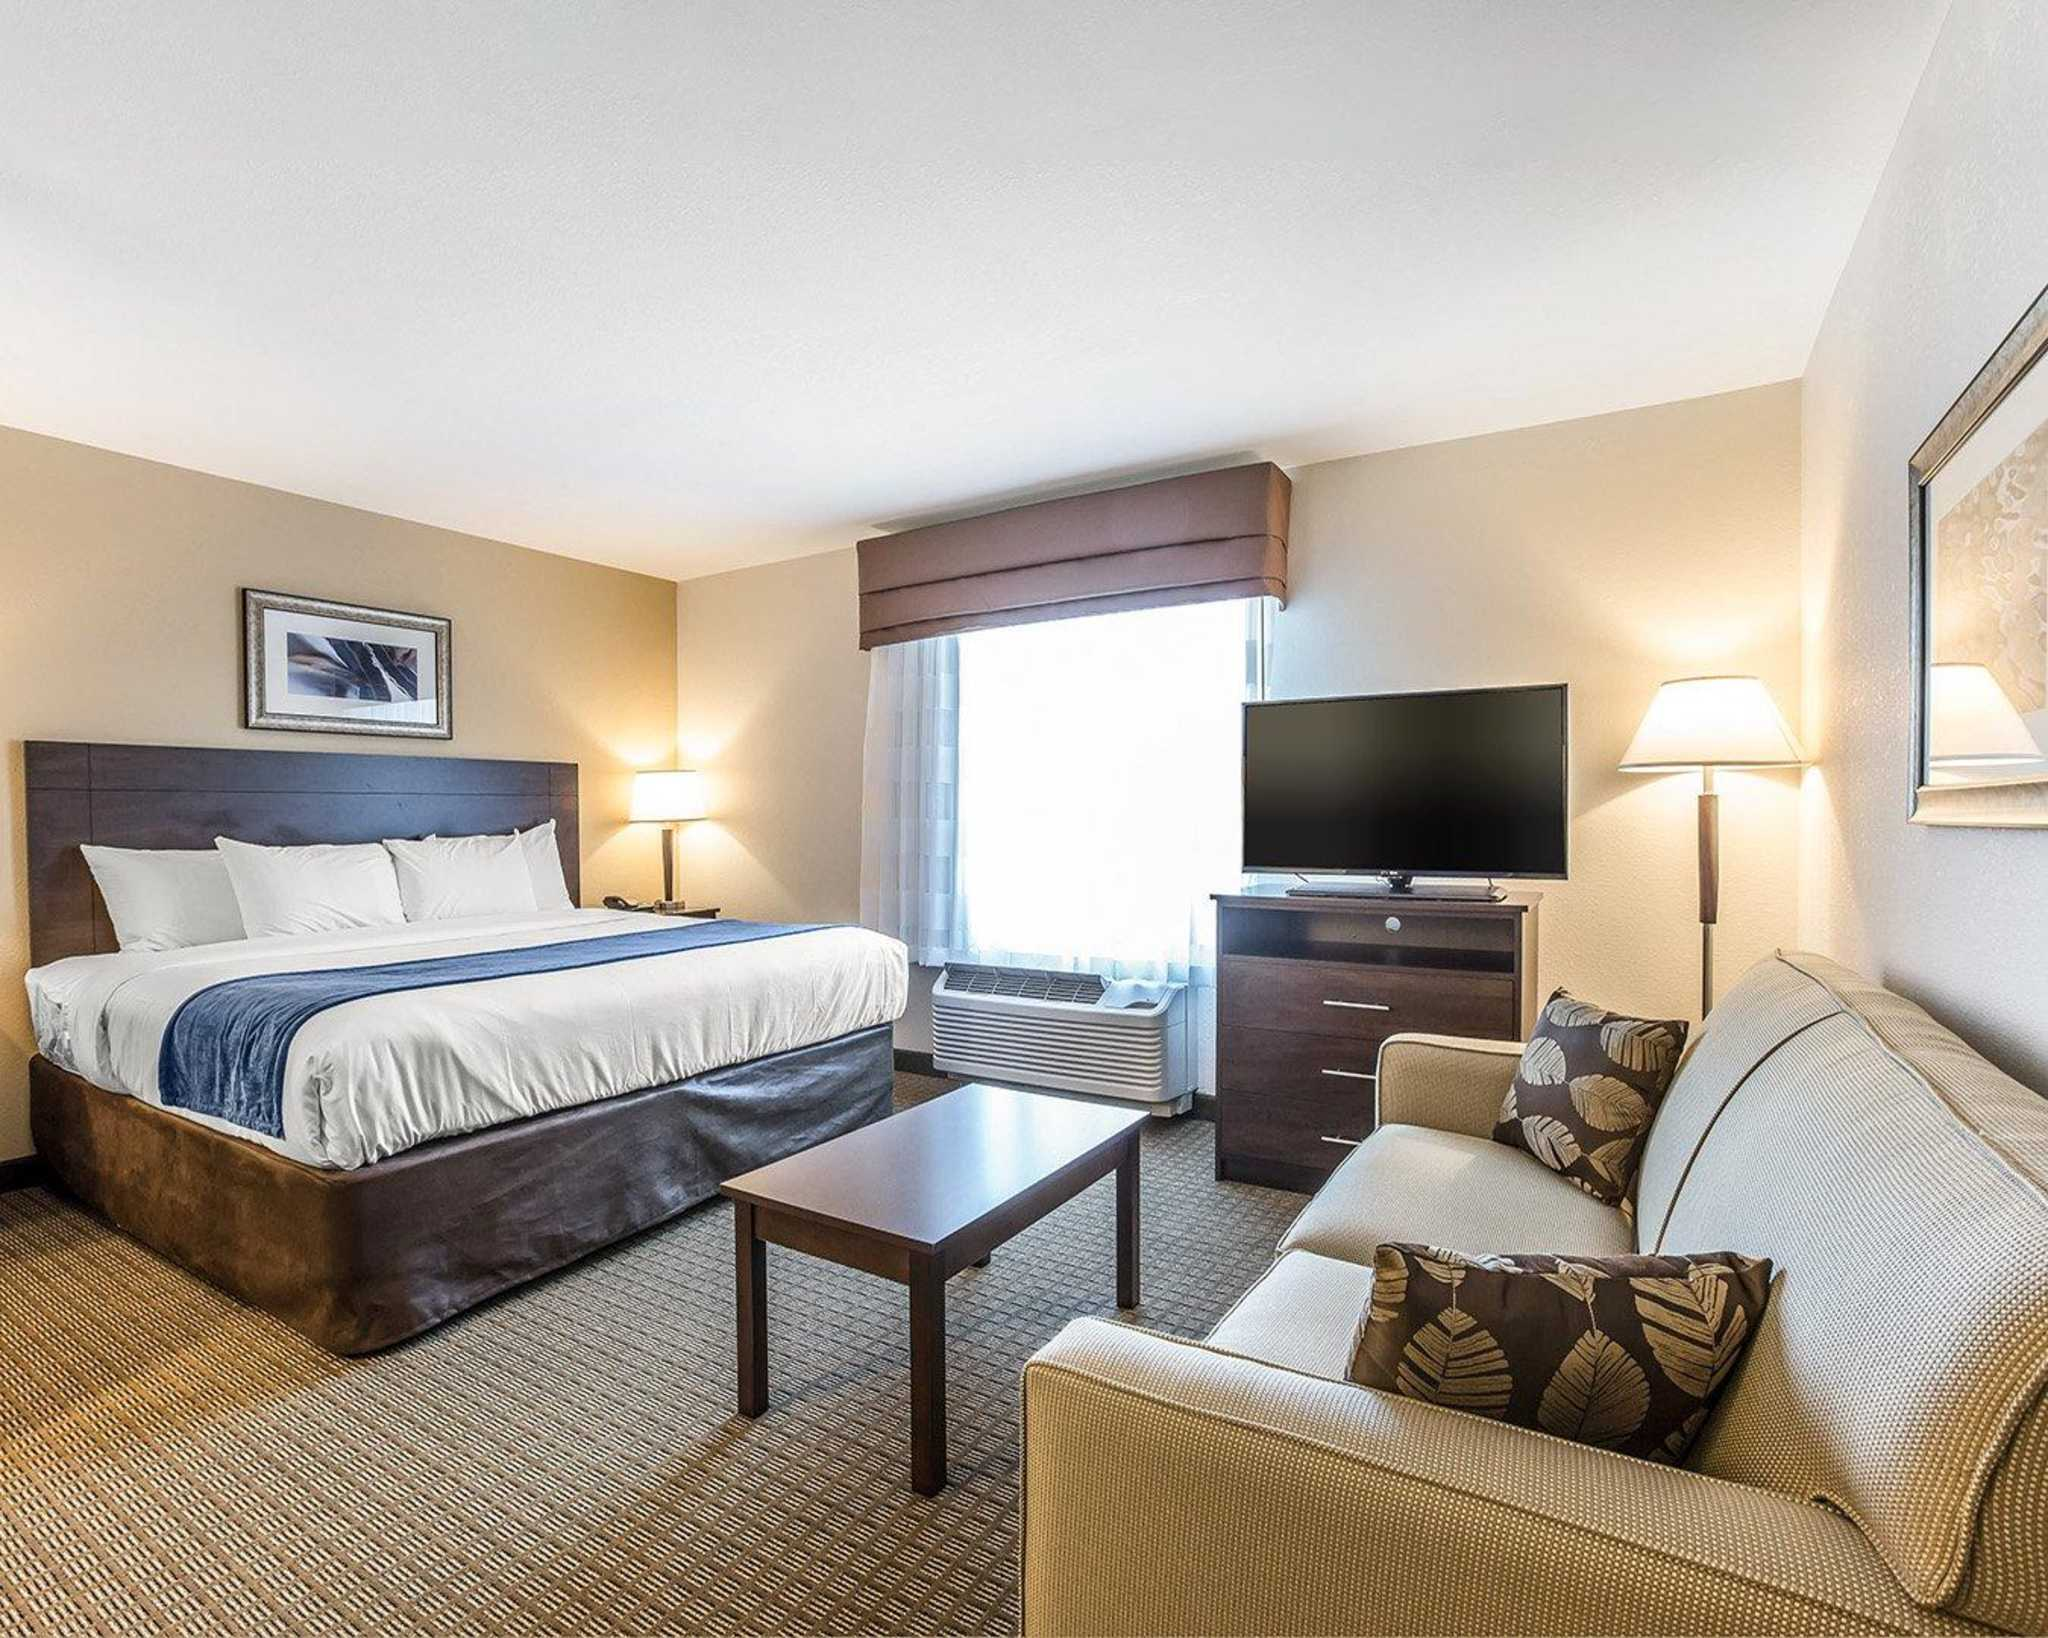 MainStay Suites Cartersville - Emerson Lake Point image 0